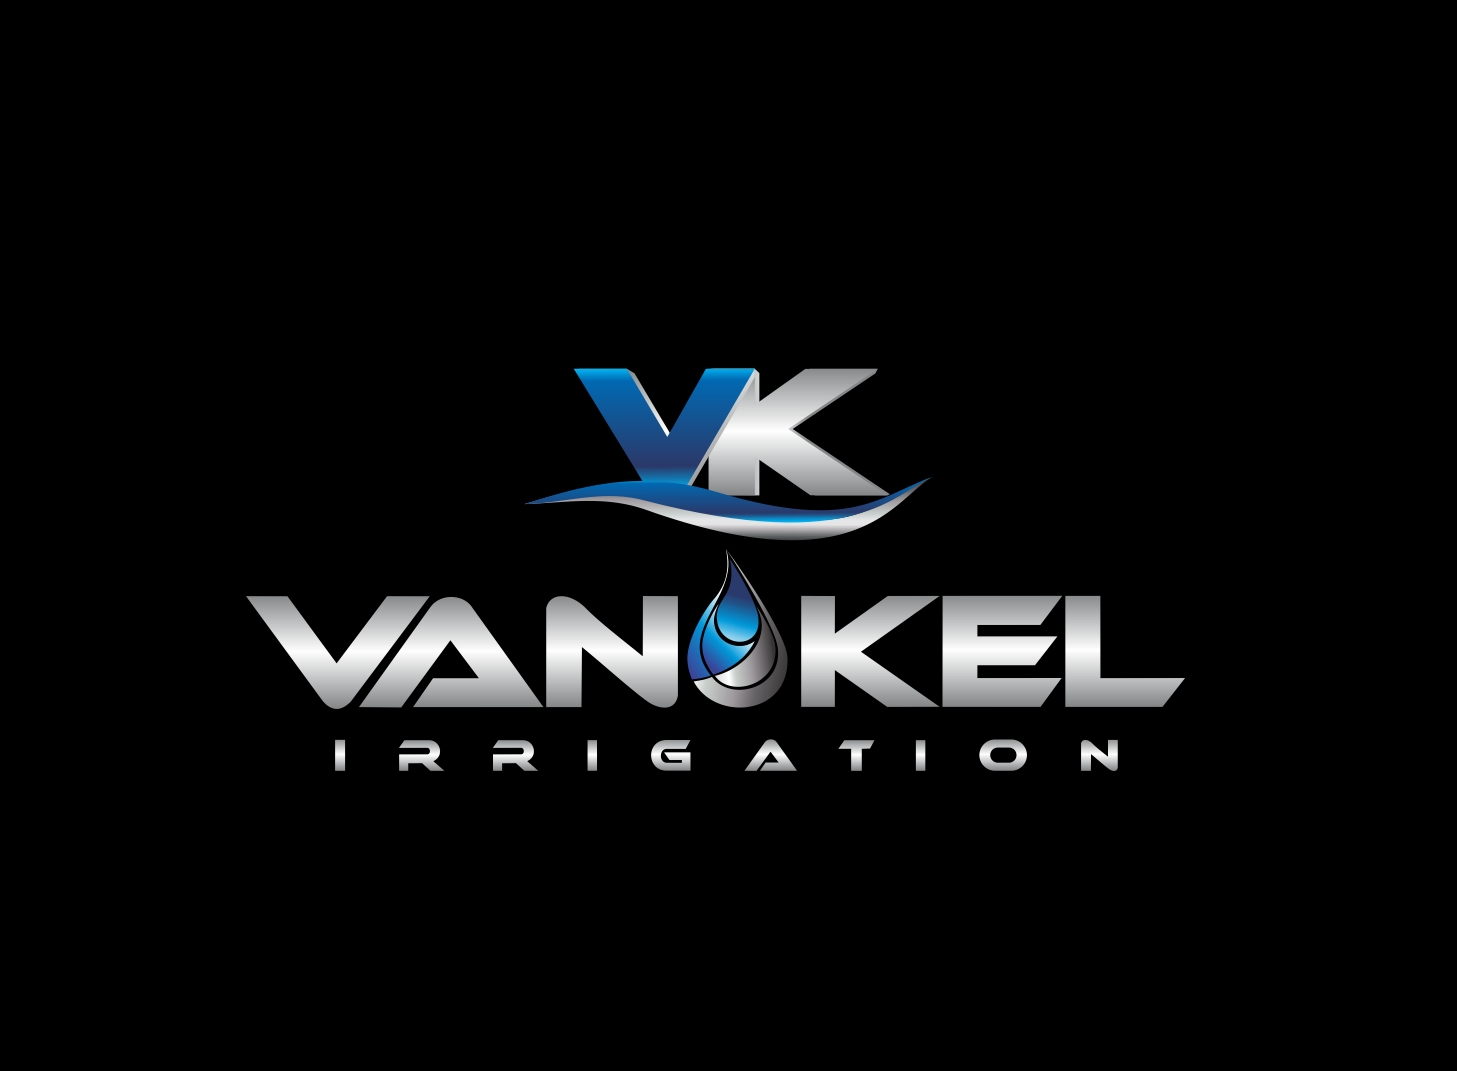 Logo Design by Zdravko Krulj - Entry No. 348 in the Logo Design Contest Van-Kel Irrigation Logo Design.